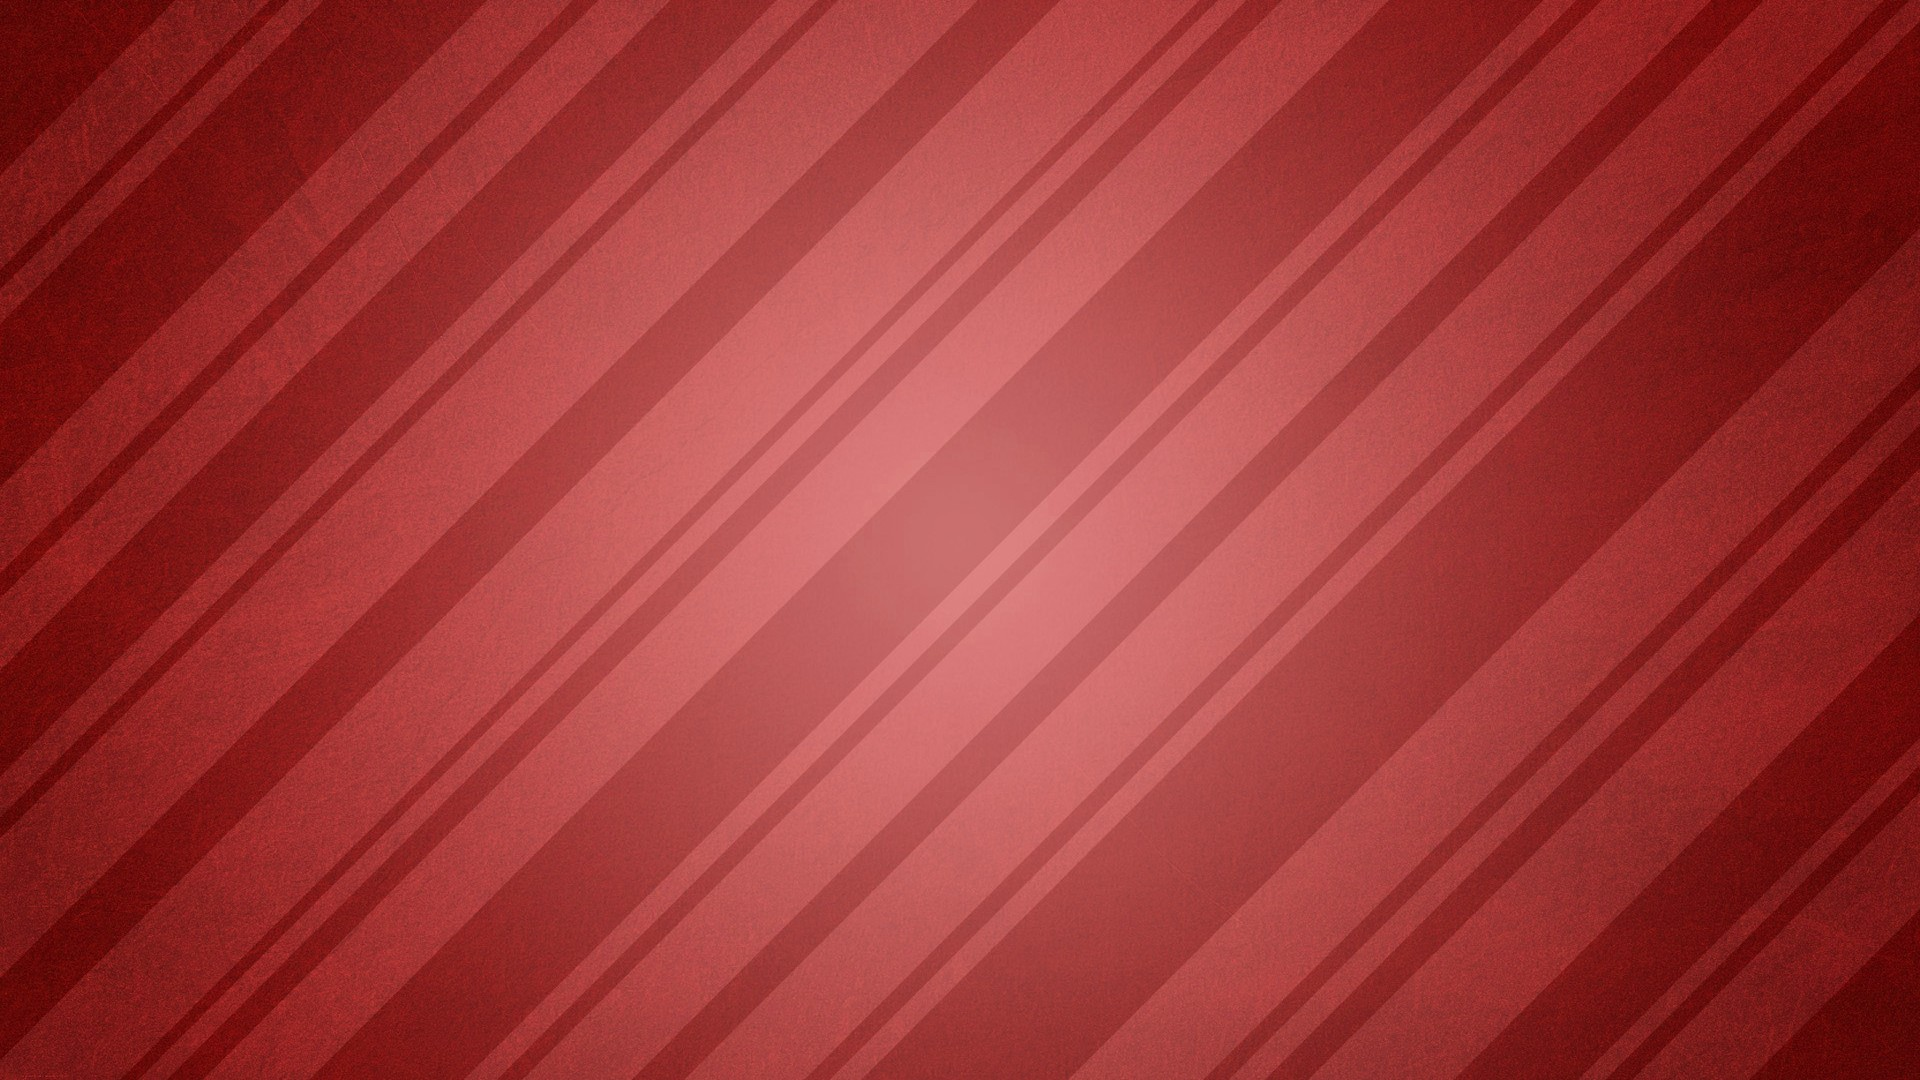 Good Wallpapers Iphone Wrapping Paper Red Hd Wallpapers